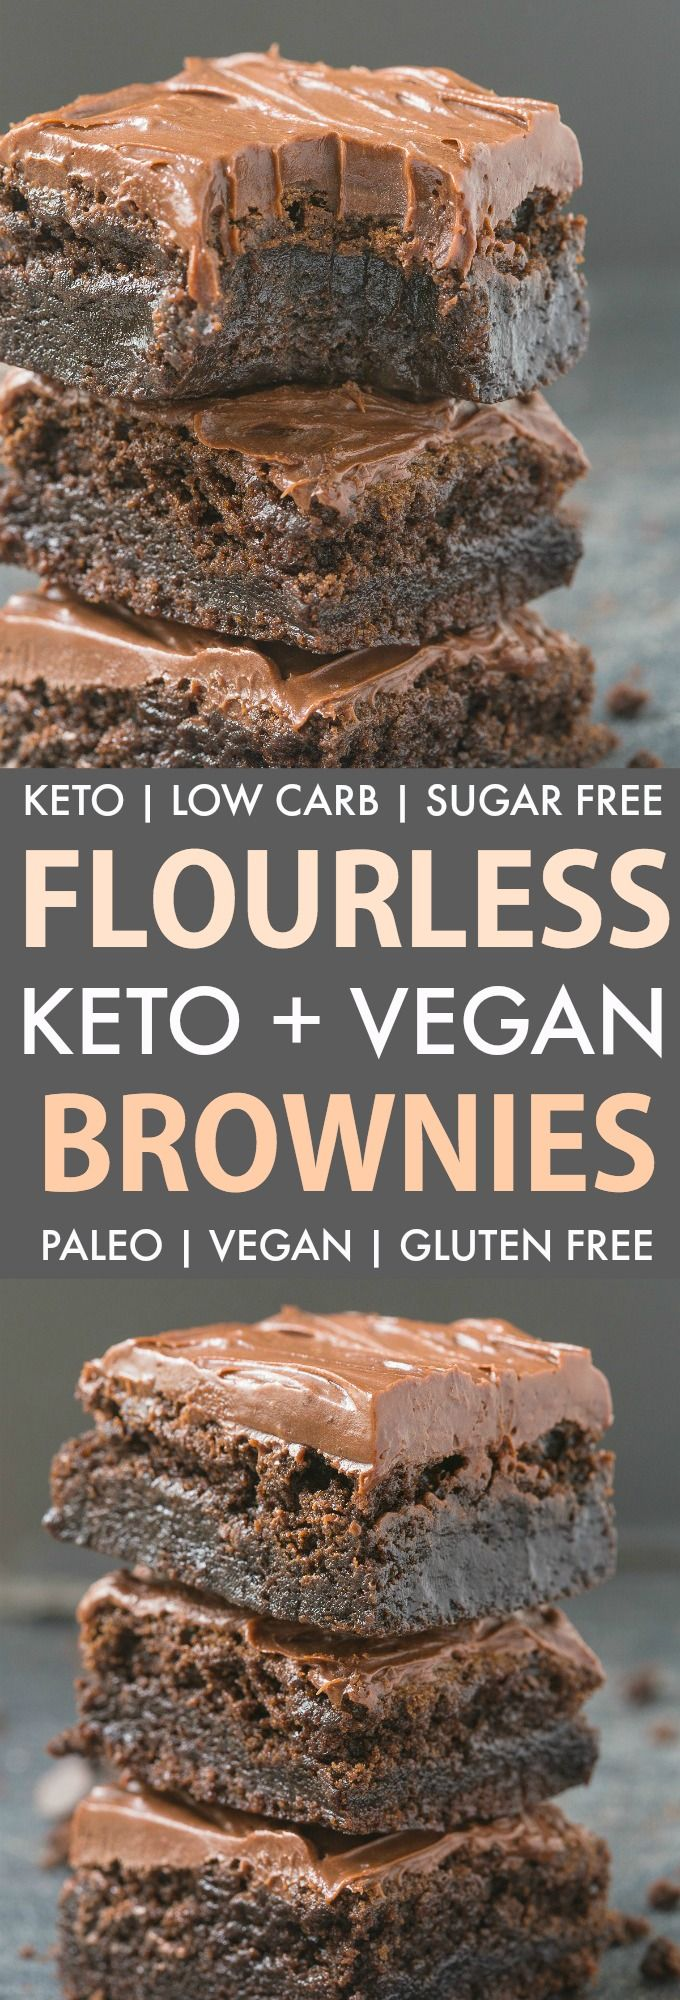 These Easy Flourless Fudge Brownies are gooey and low carb, you won't believe they are keto and vegan! Made with no eggs and no sugar, they are guilt-free and delicious! Paleo, Gluten Free, Sugar Free. #ketodessert #vegandessert #flourlessbrownies #flourless #lowcarbdessert #paleo #sugarfree